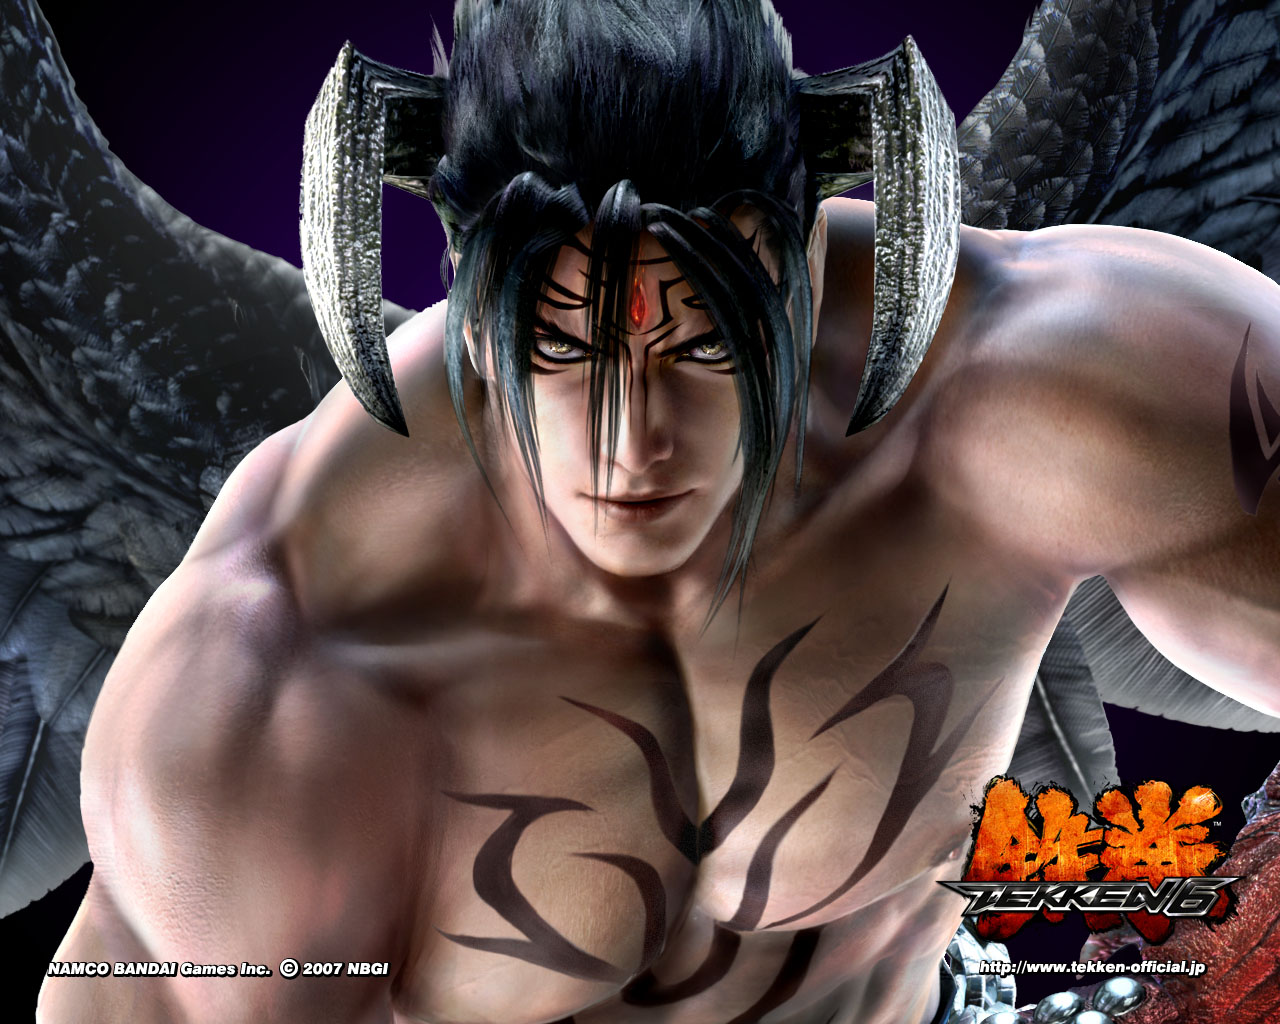 Tekken 6 Screensaver